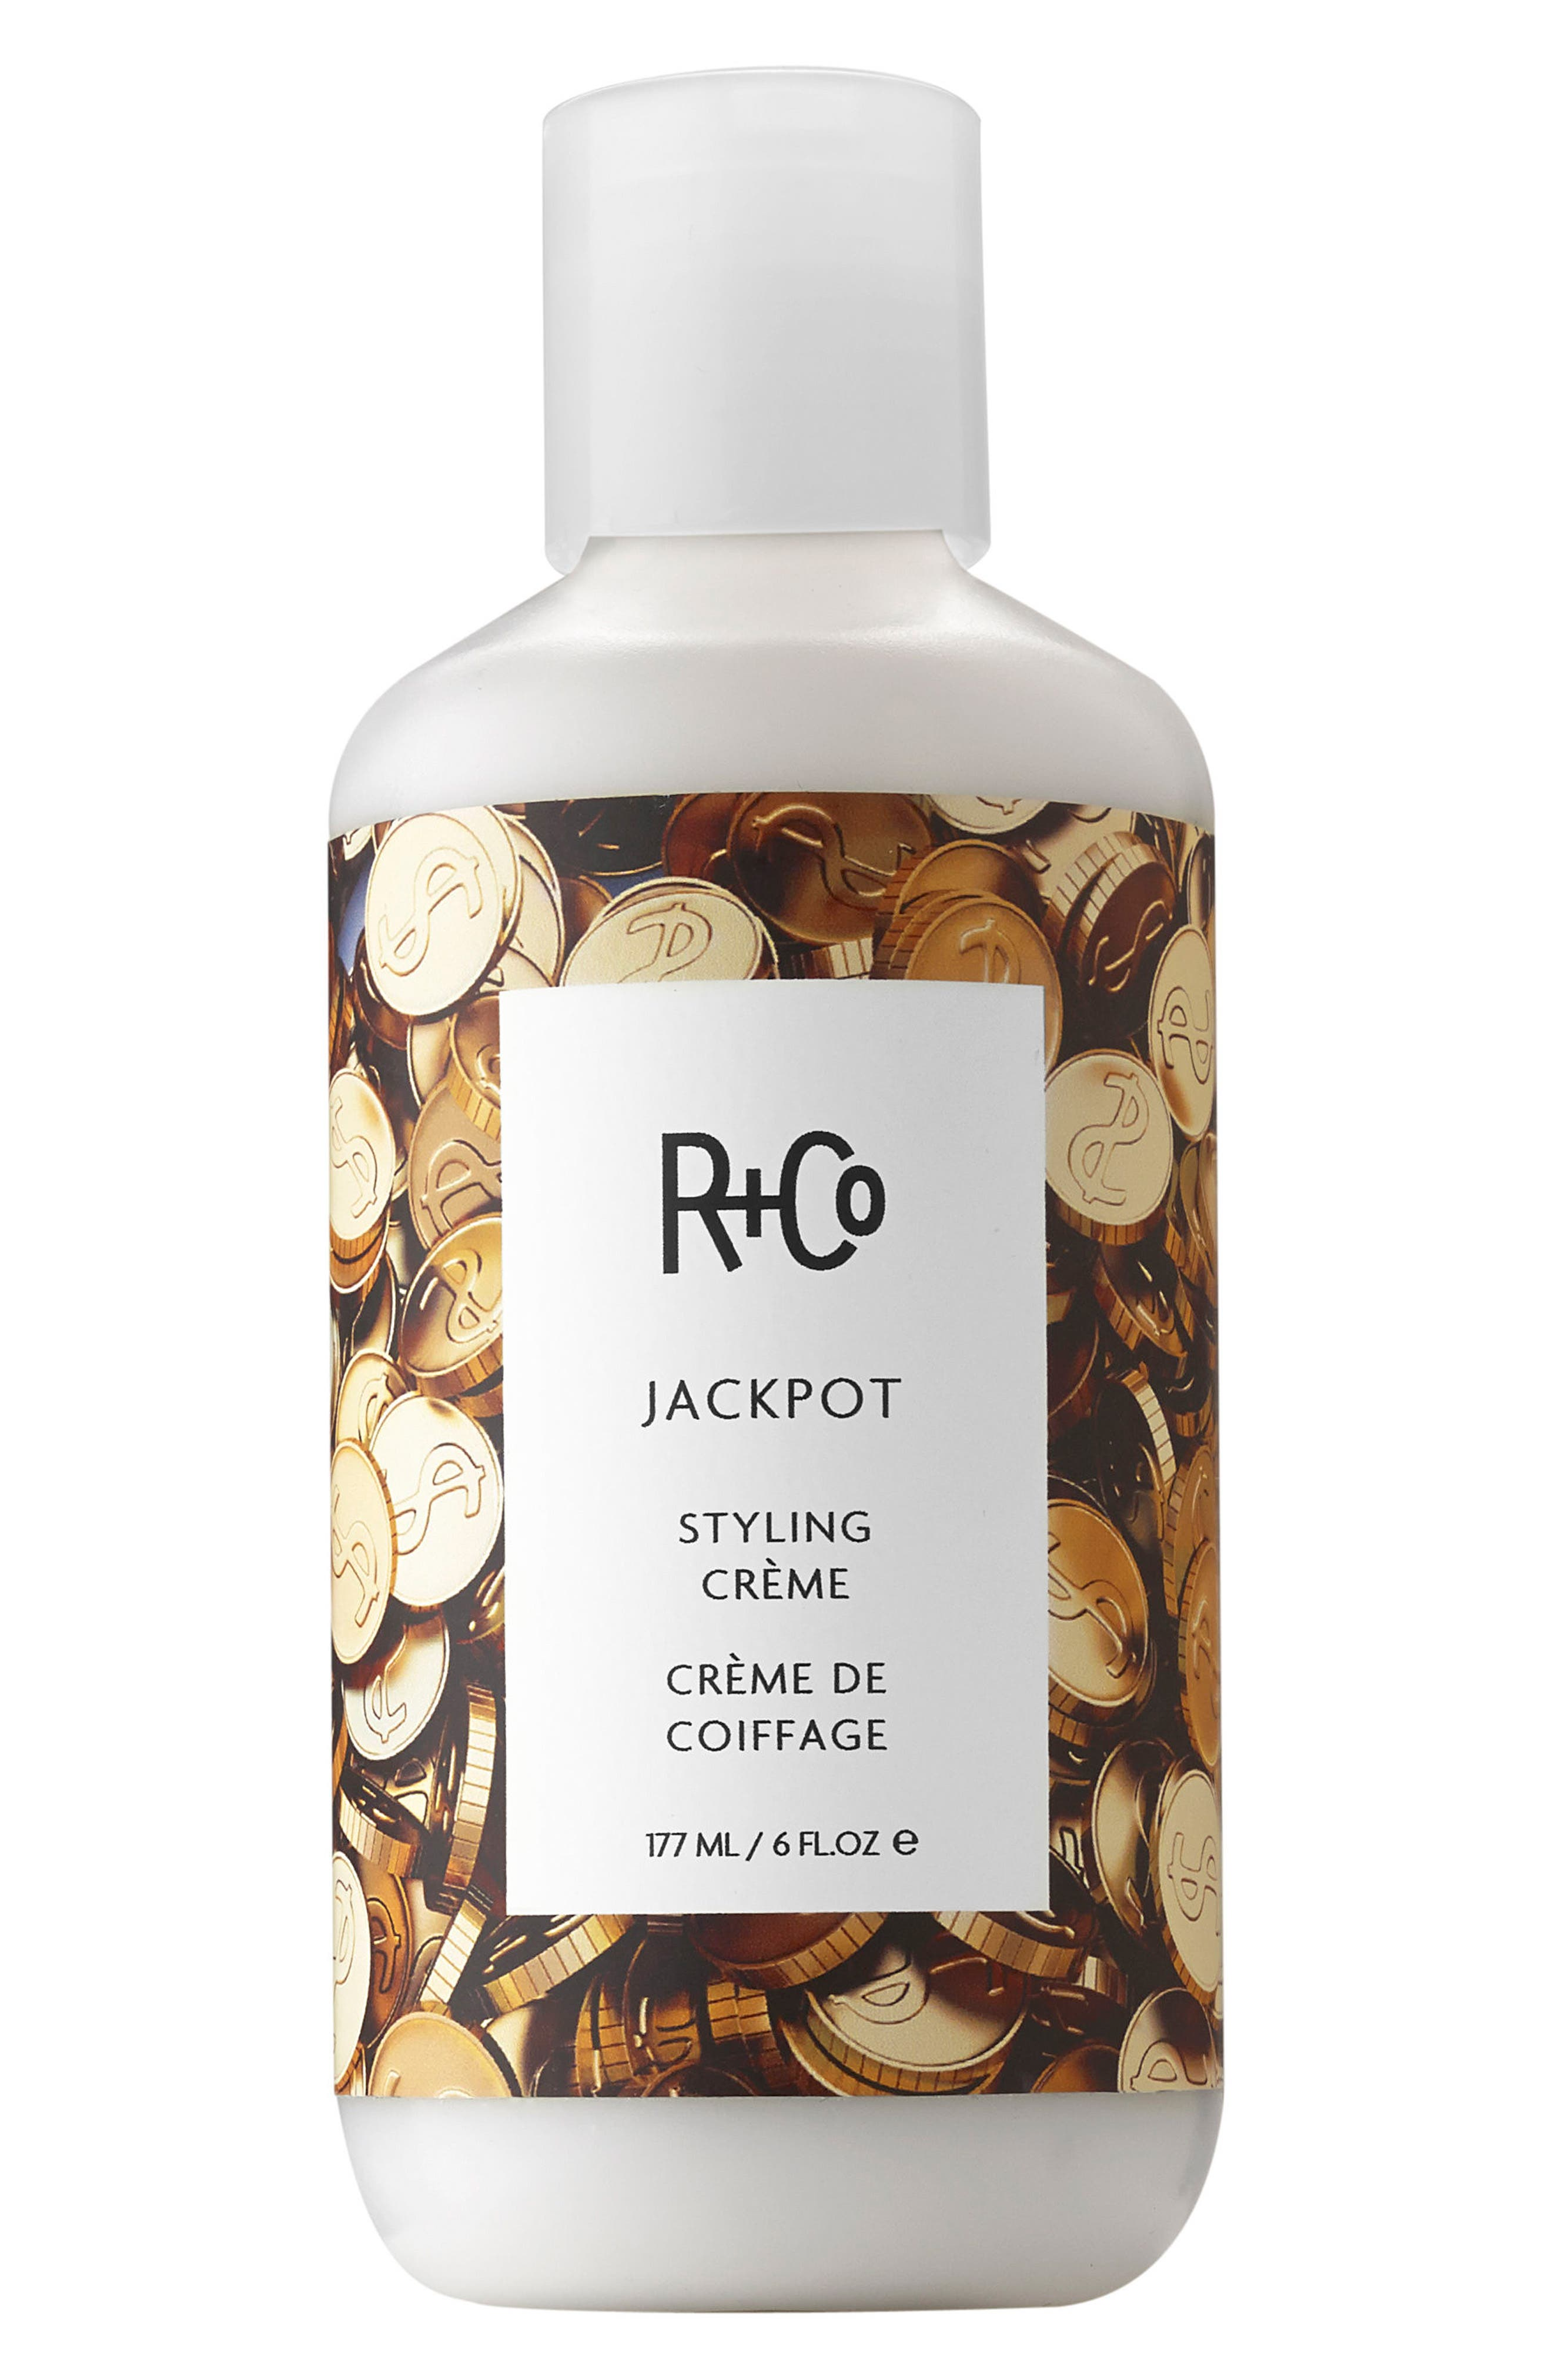 Main Image - SPACE.NK.apothecary R+Co Jackpot Styling Crème